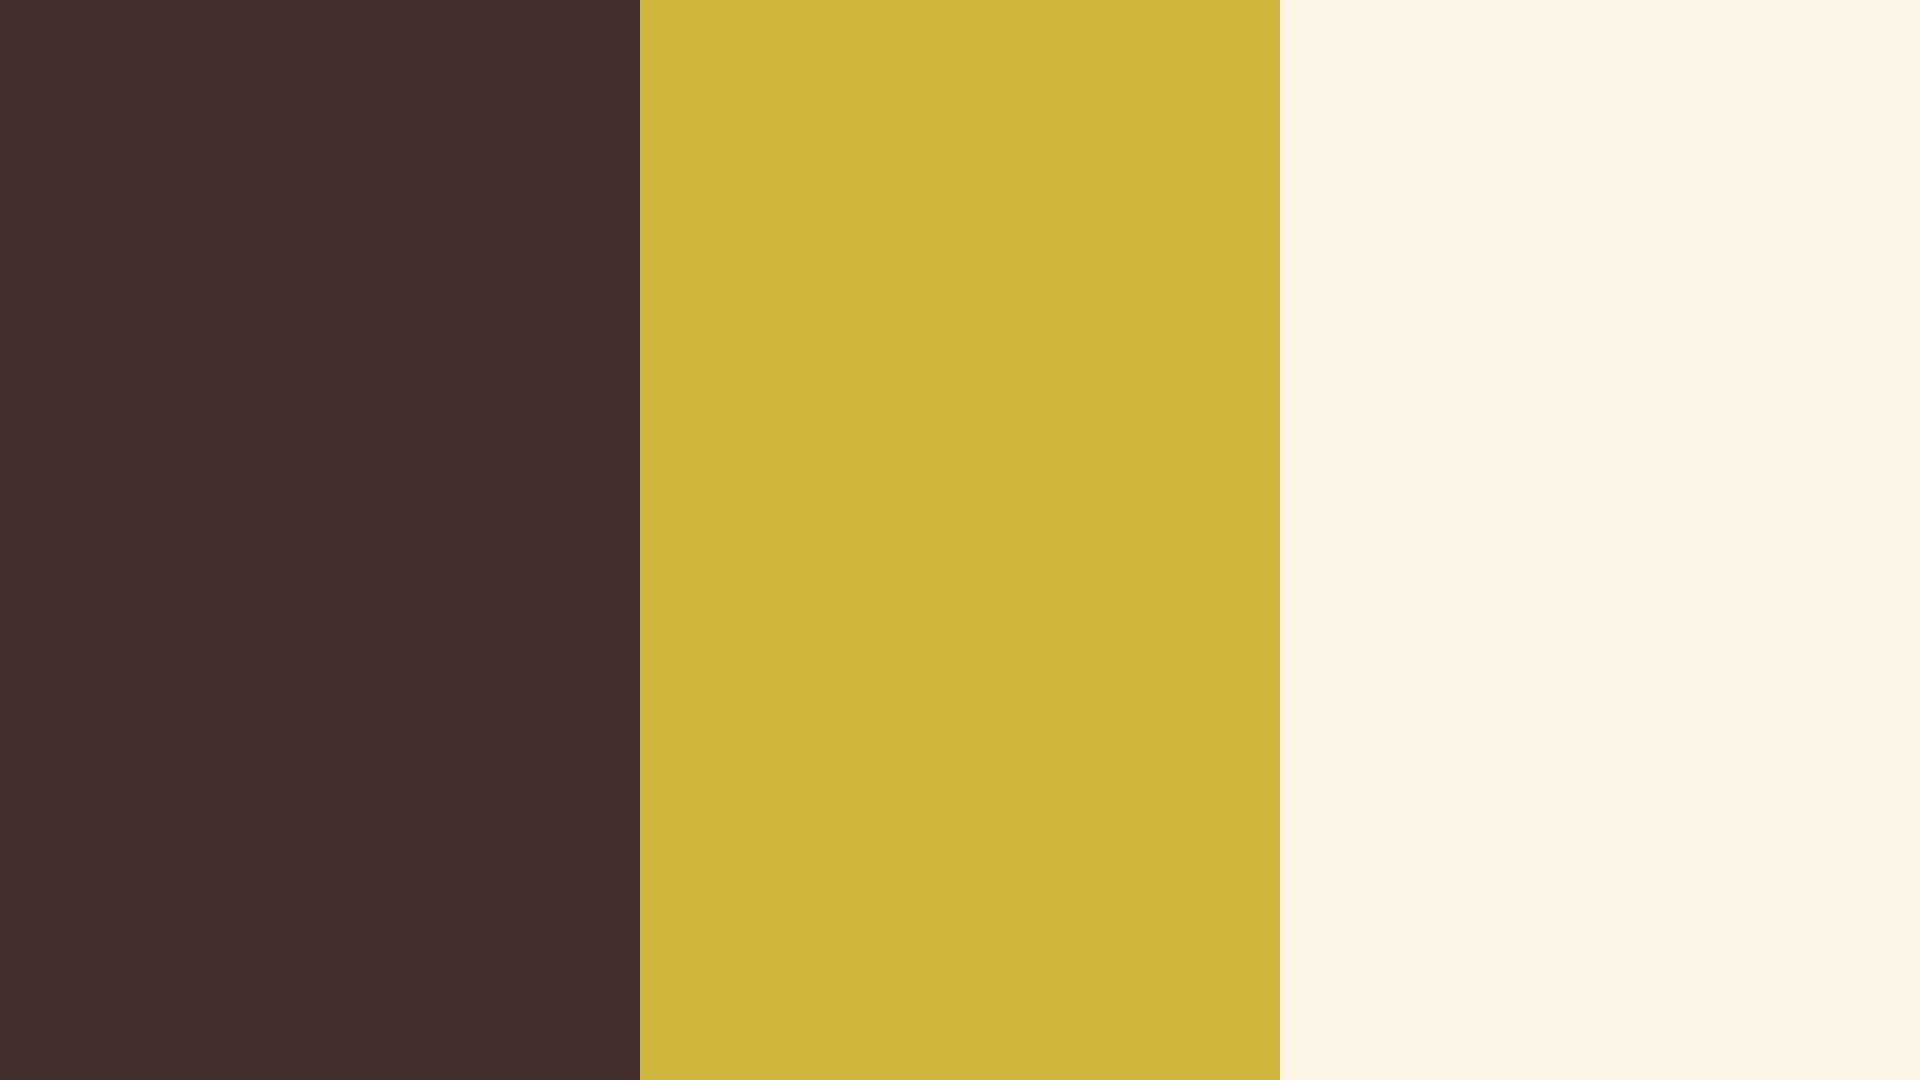 1920x1080 resolution Old Burgundy Old Gold and Old Lace solid 1920x1080